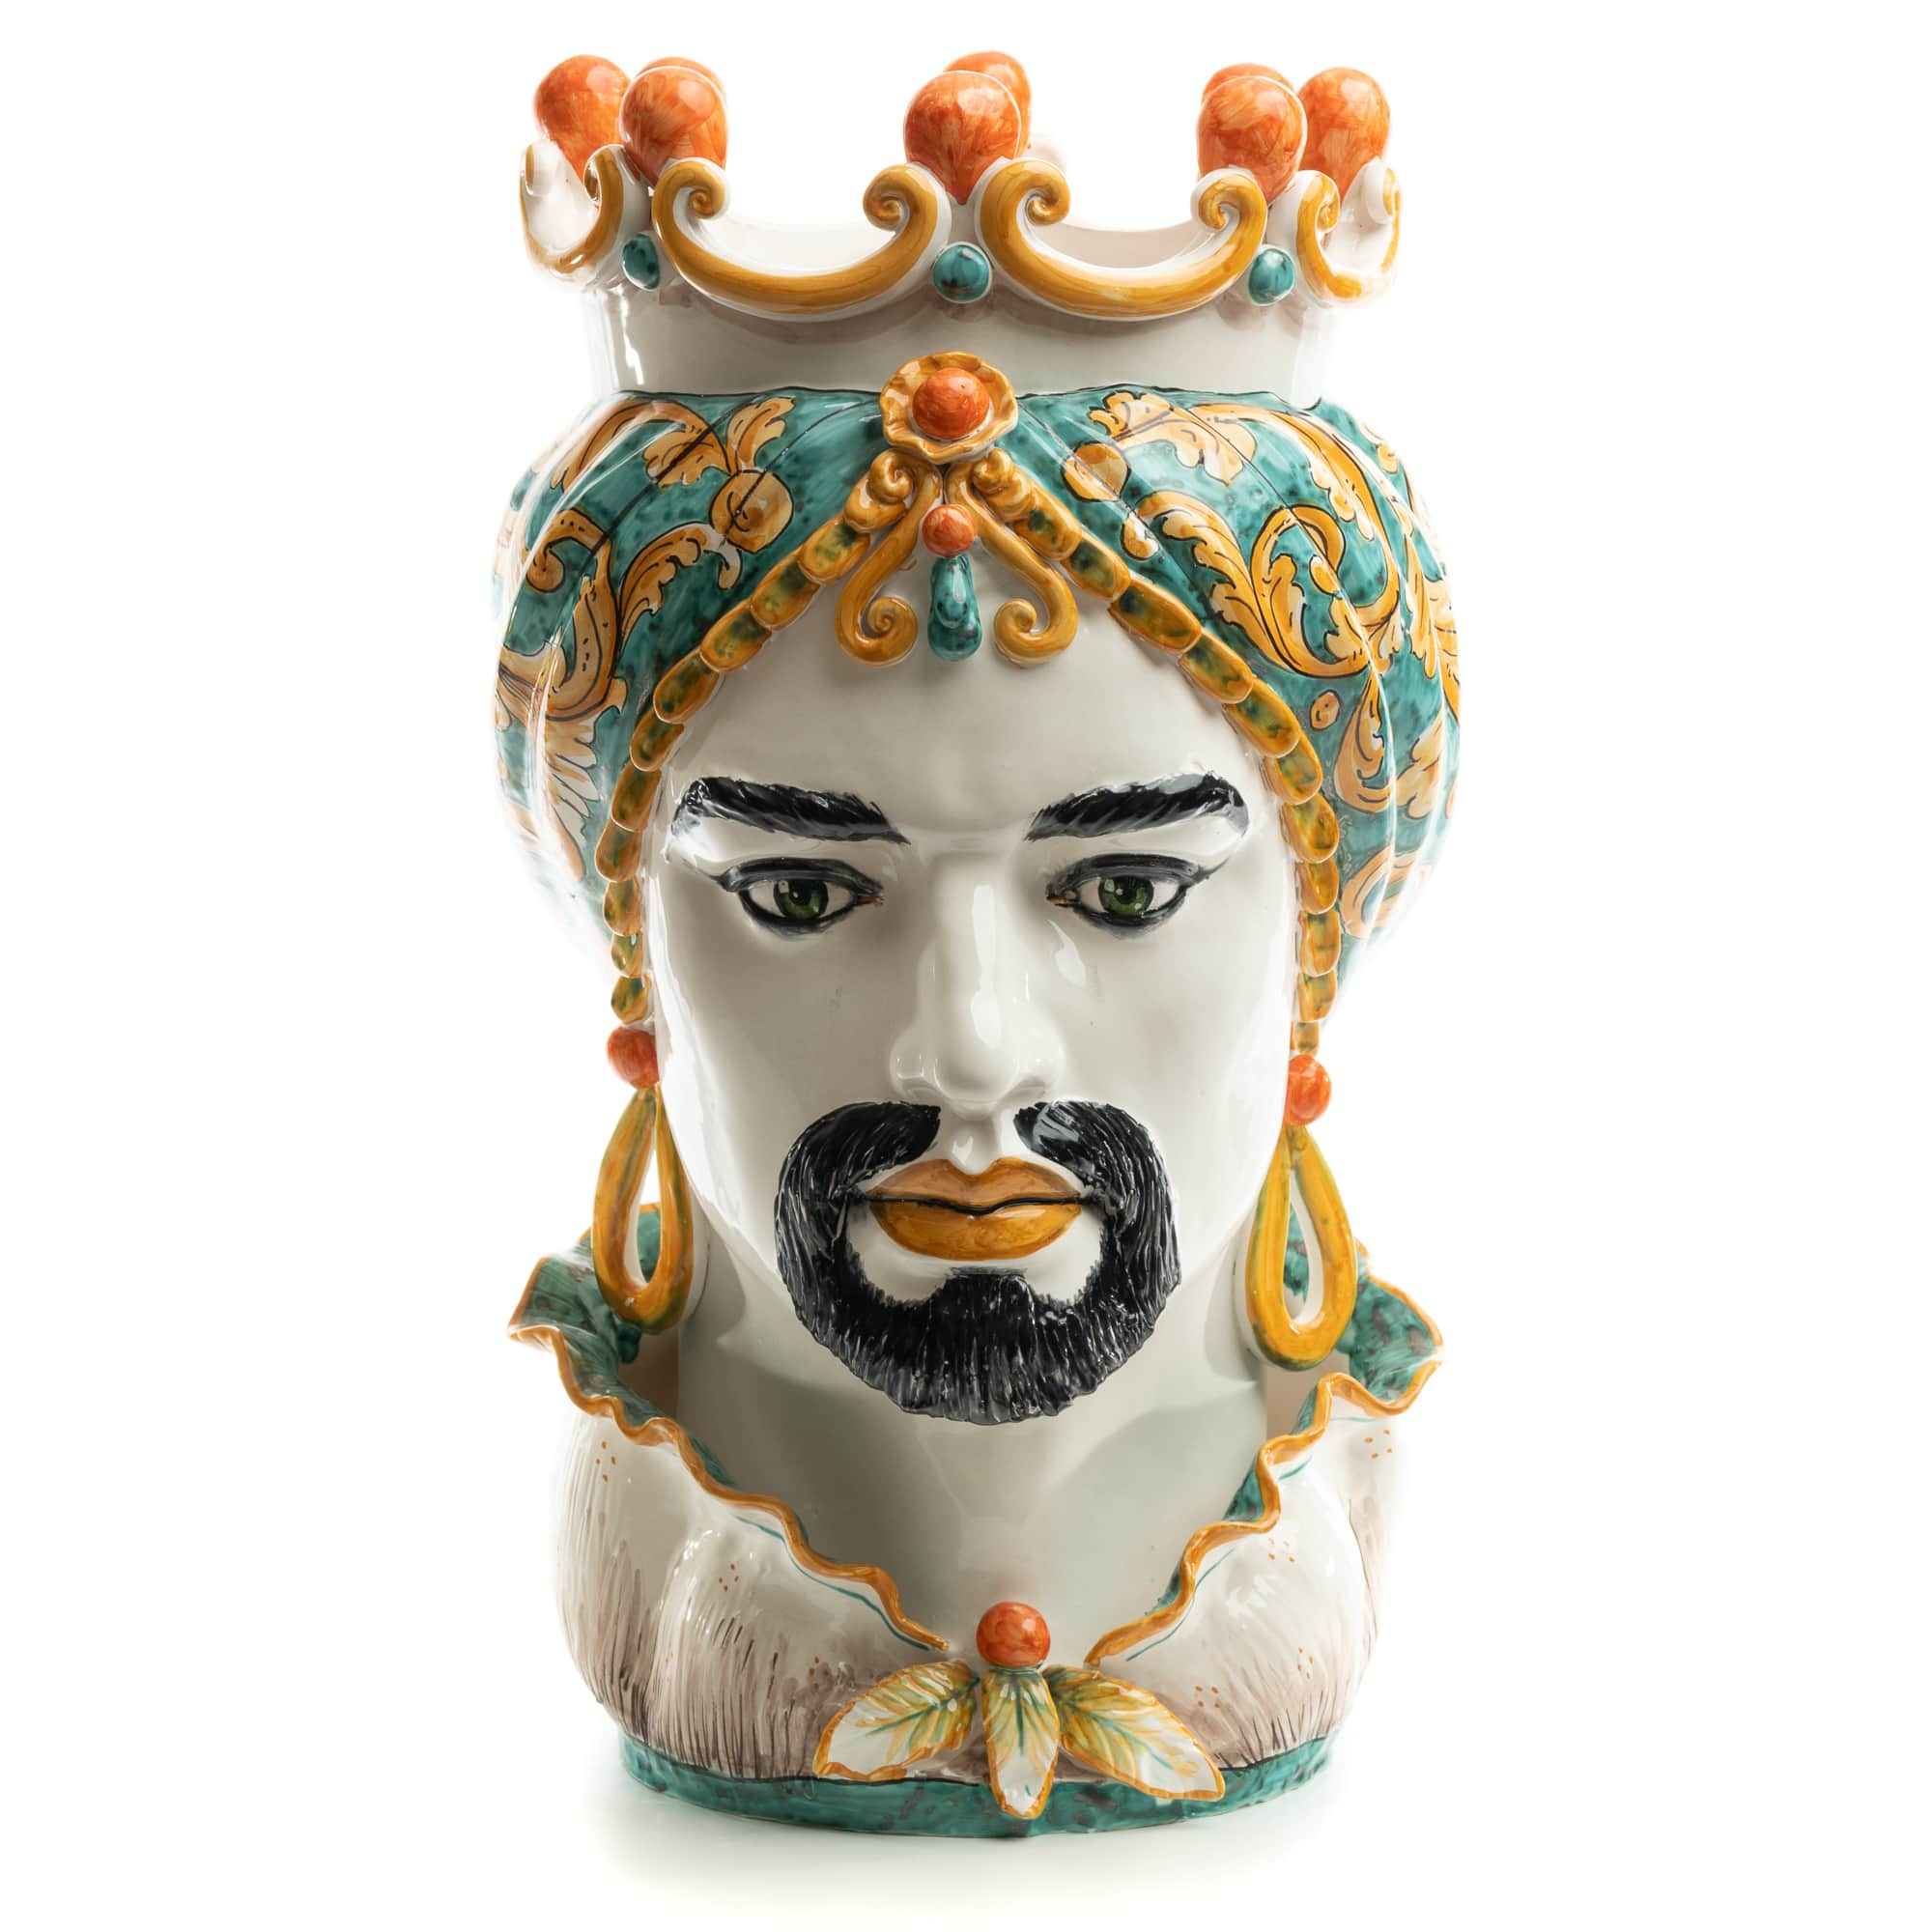 Schittone Moro Green & Orange Moorish Gigante Head